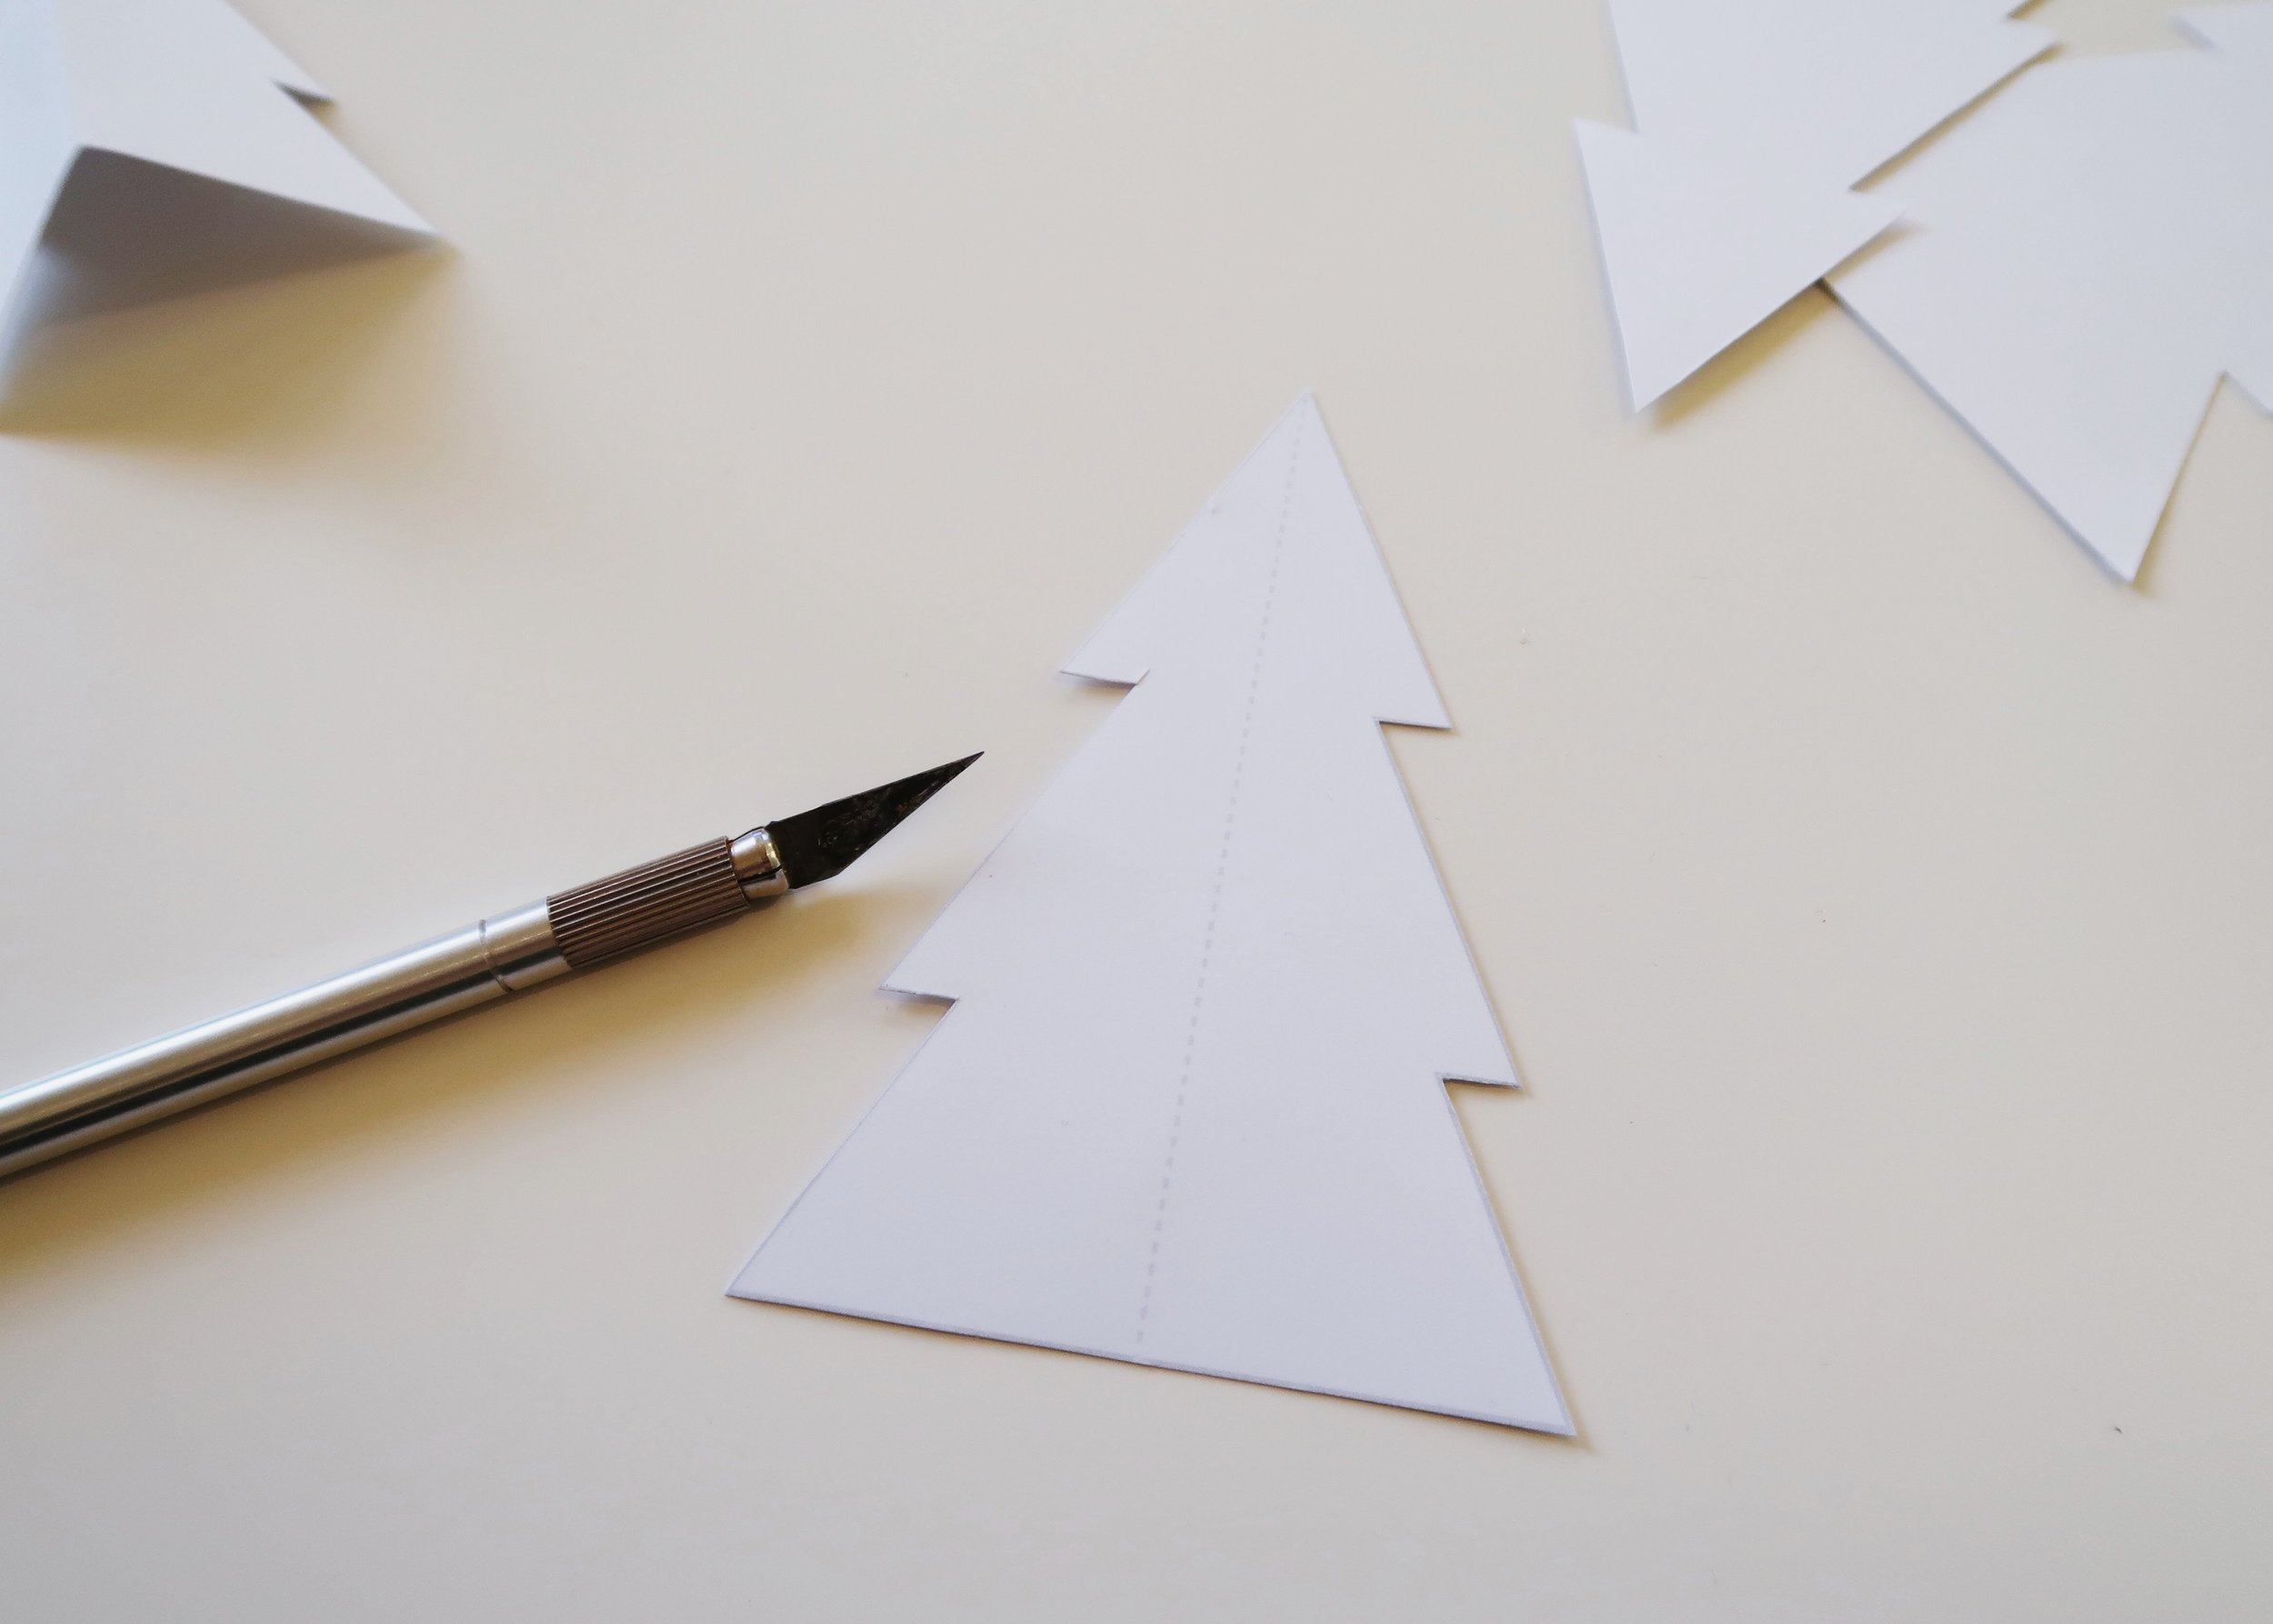 2. - Using a ruler and a craft knife (or a pair of scissors), score down the dotted line in the middle of each of the trees. Be careful not to cut all the way through - you just want to make it easier to fold!